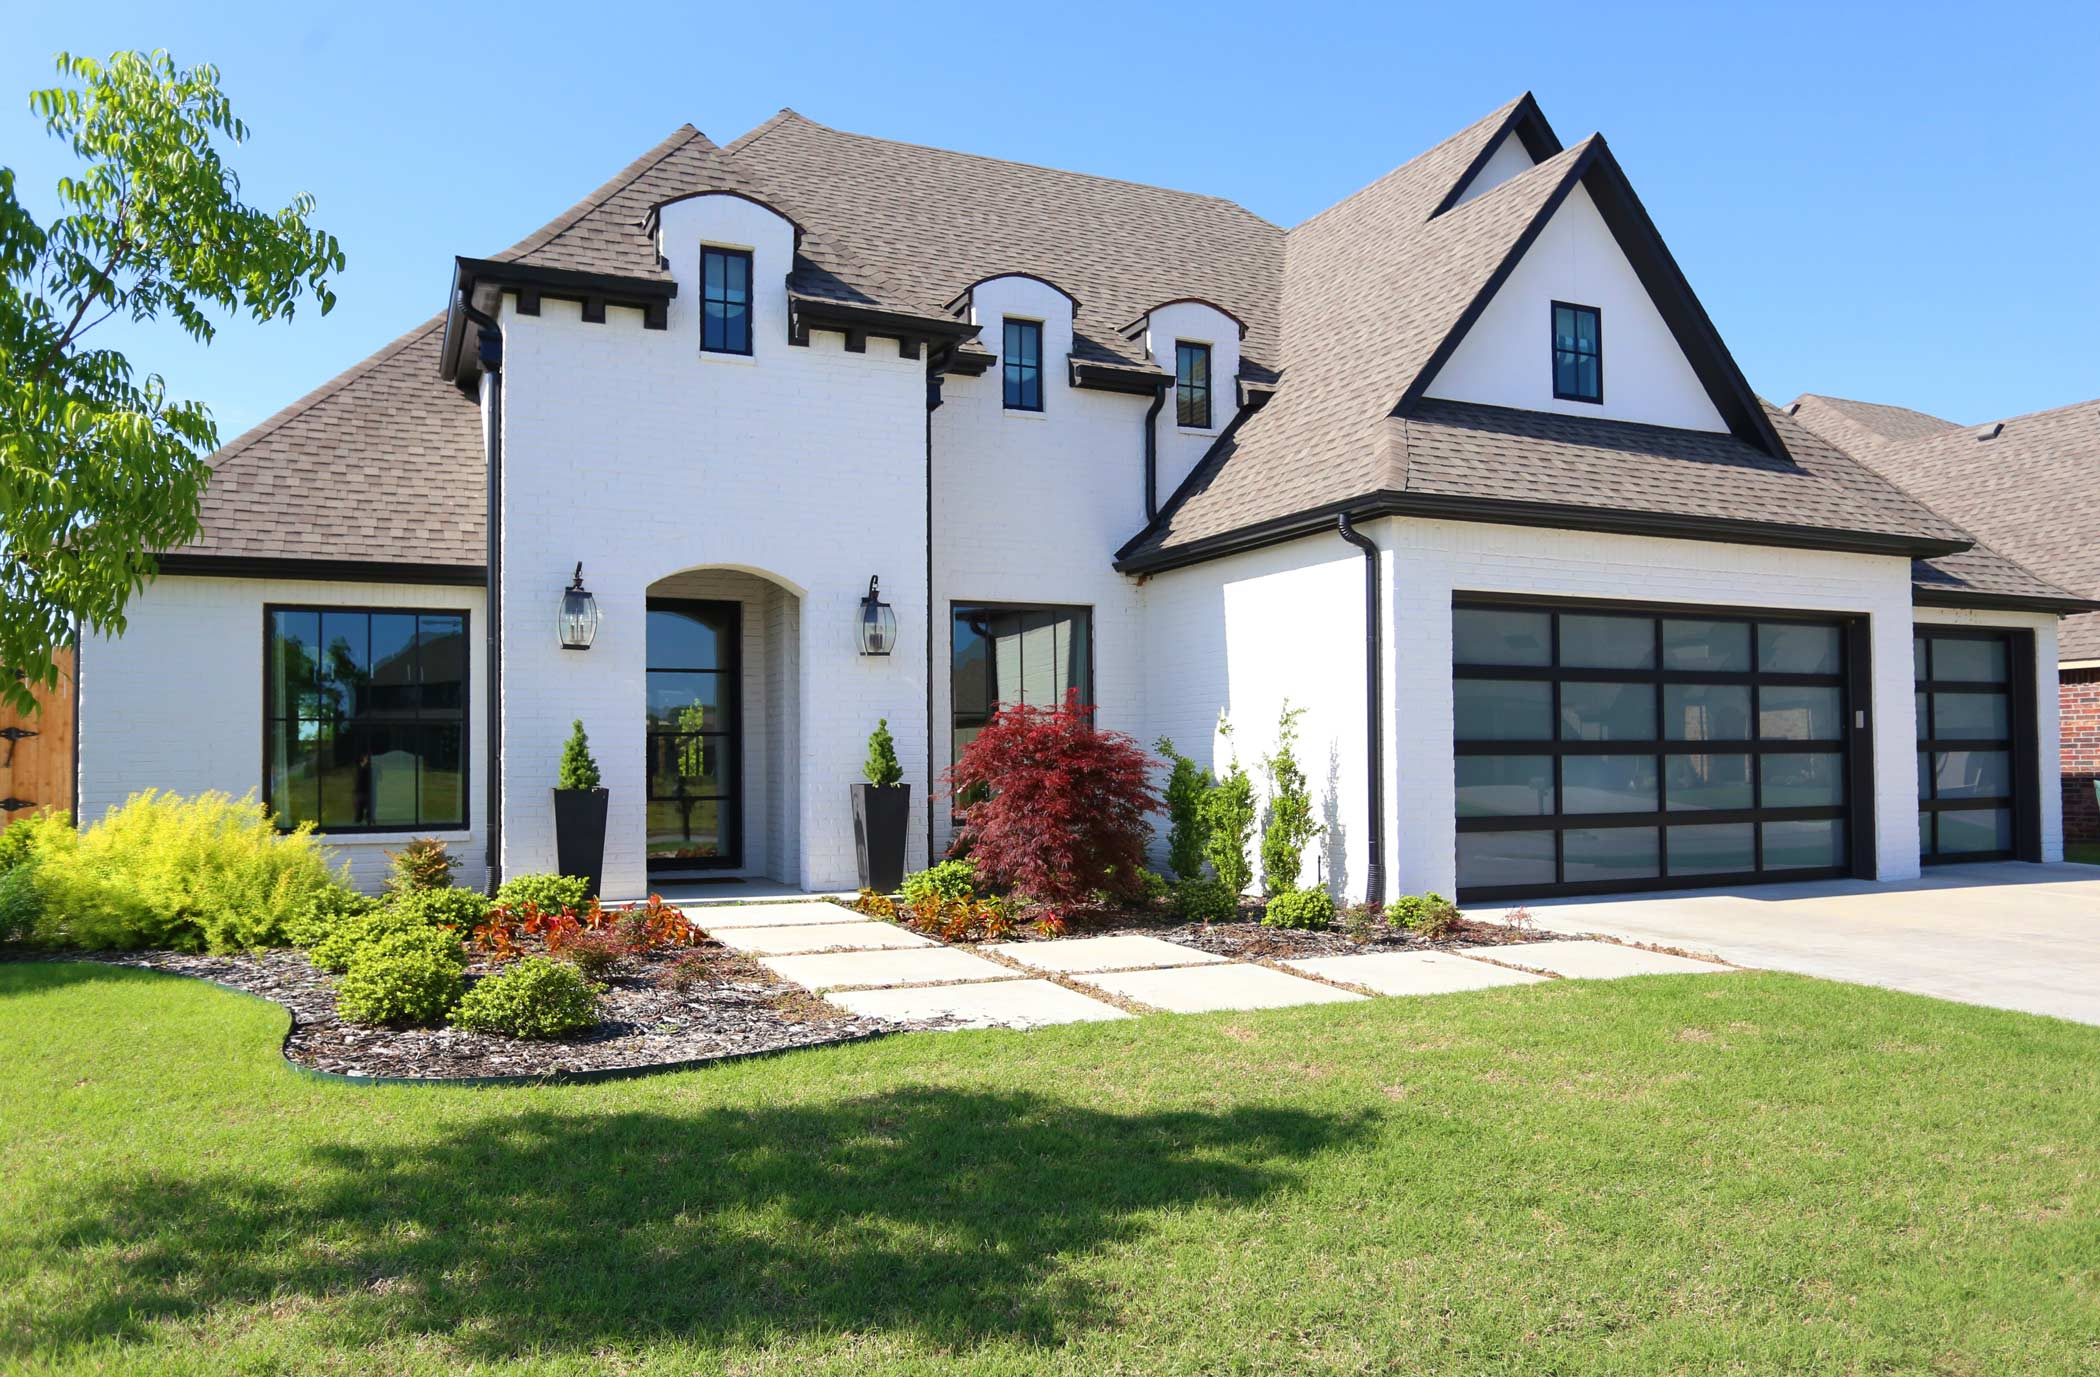 Southern homes award winning tulsa custom home builder for Southern custom homes